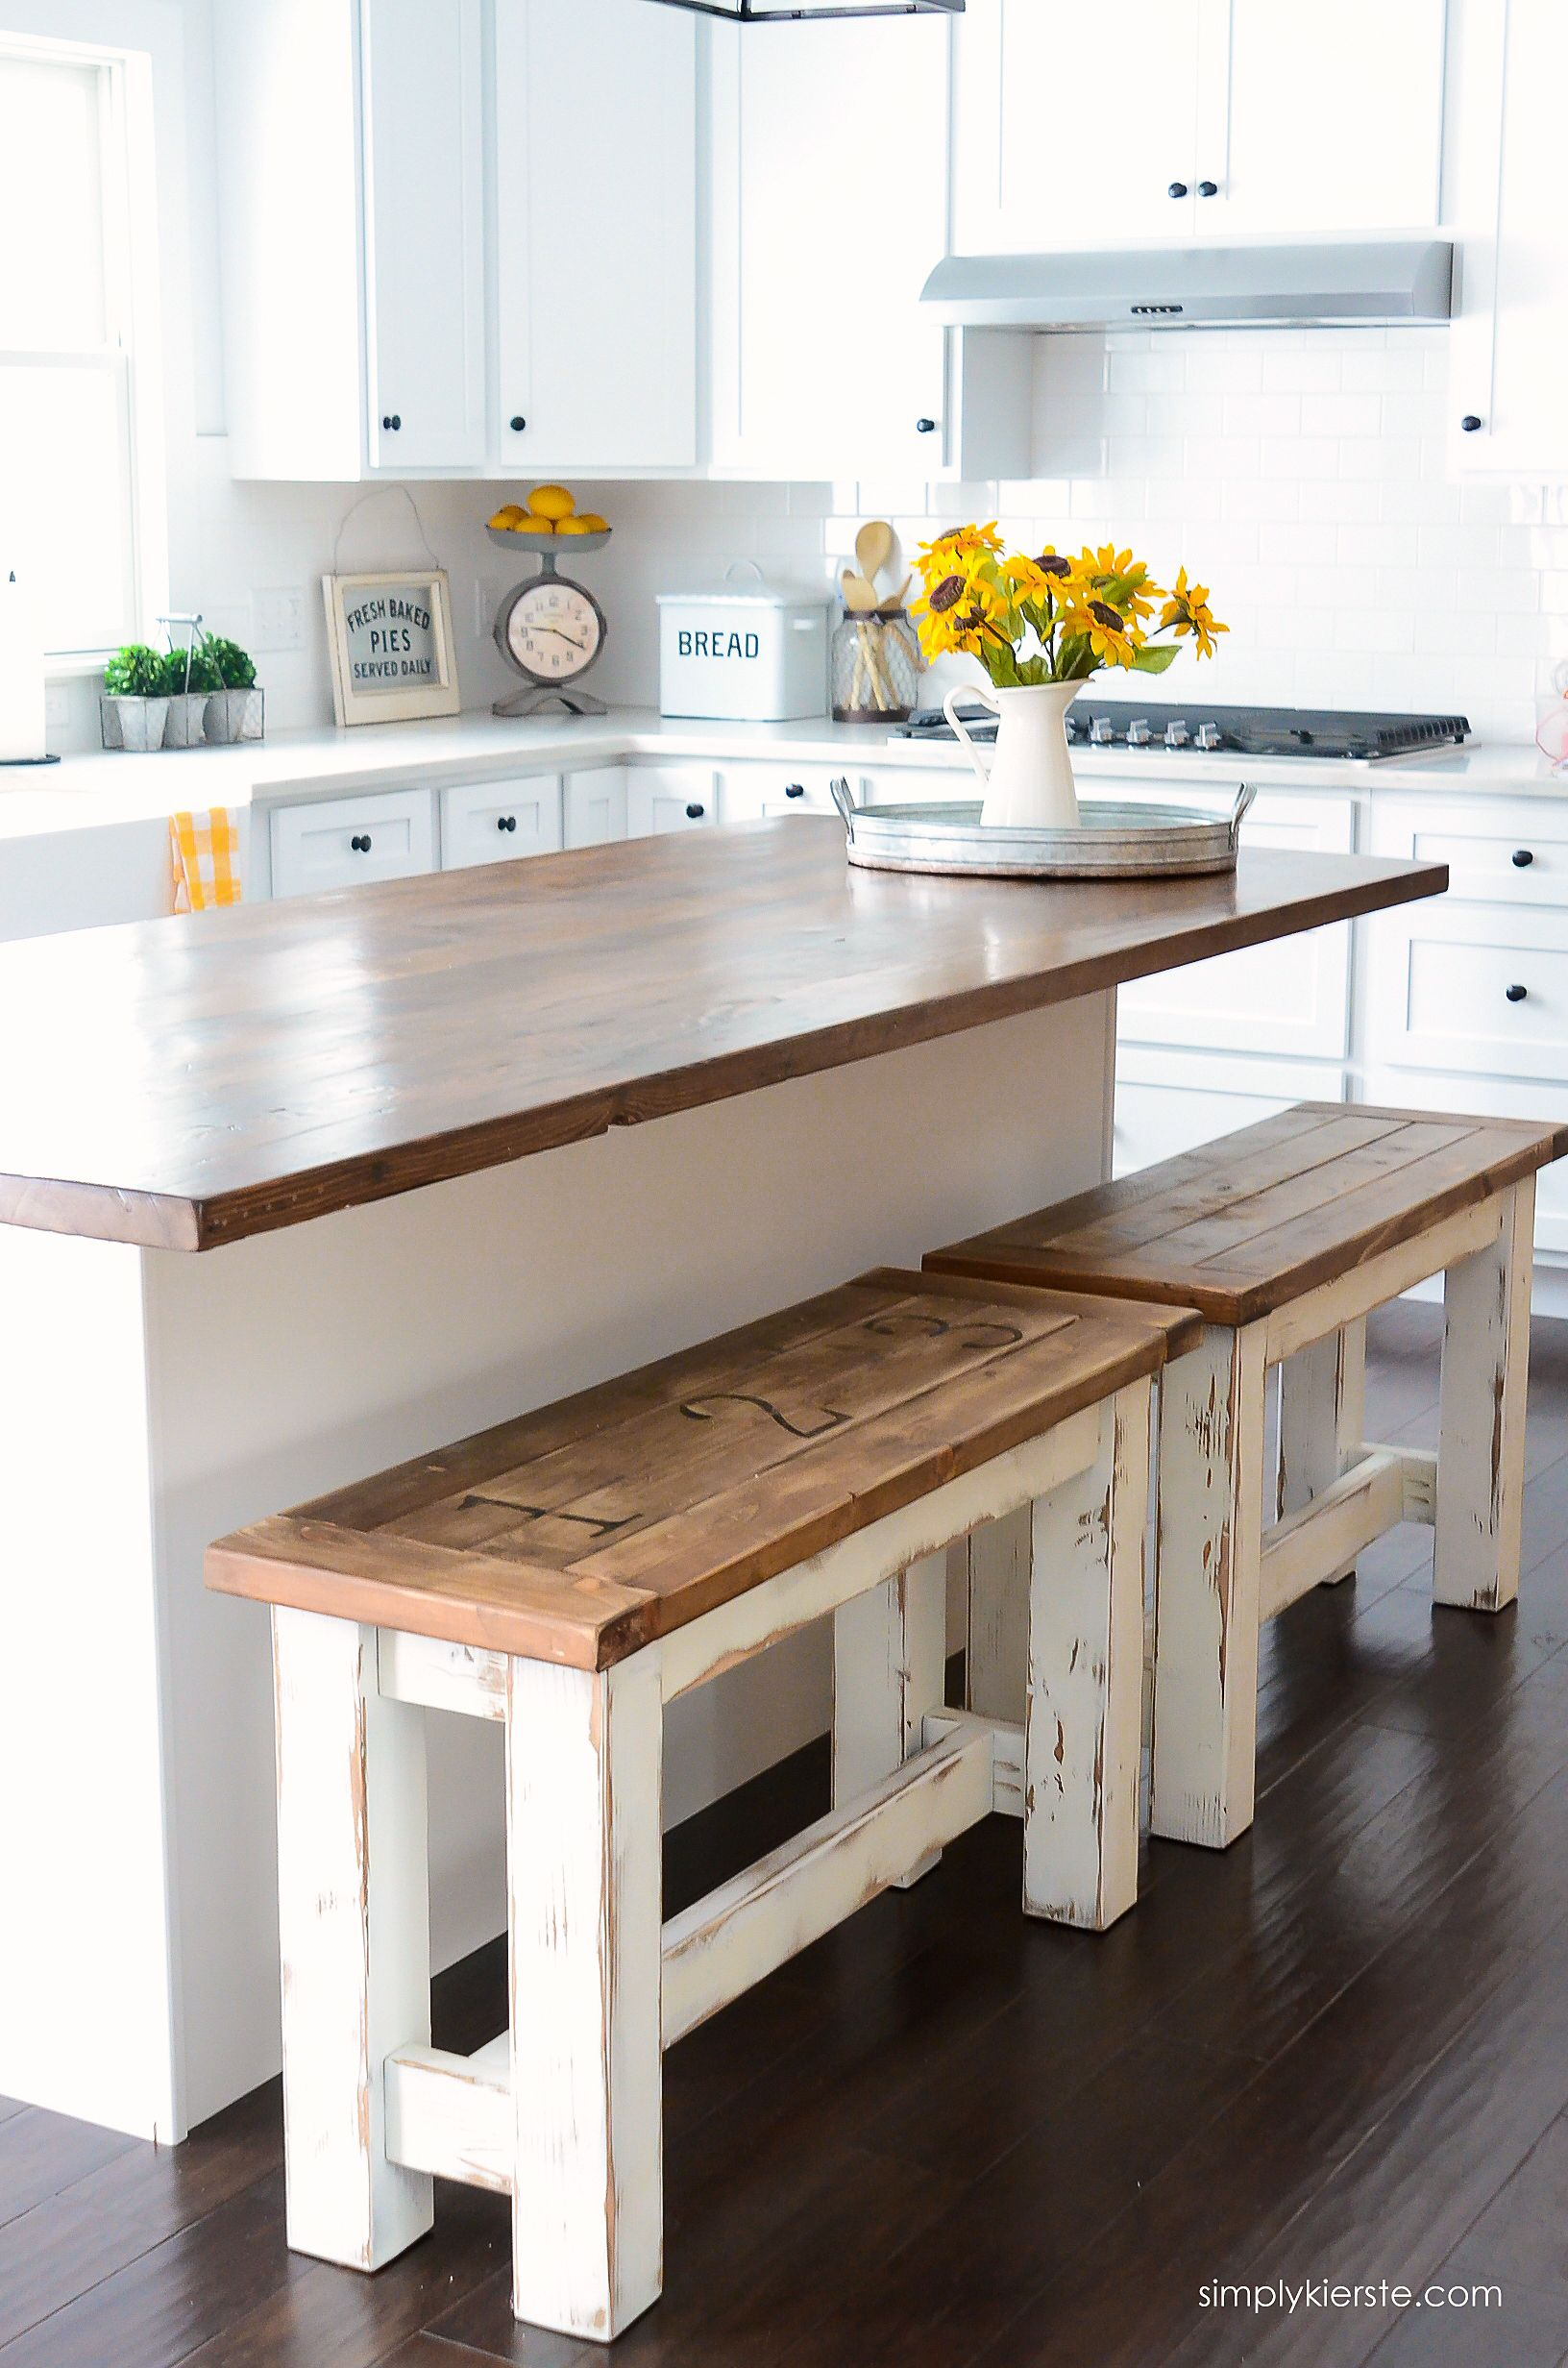 Diy kitchen benches kitchen benches farmhouse style and for Kitchen island bench